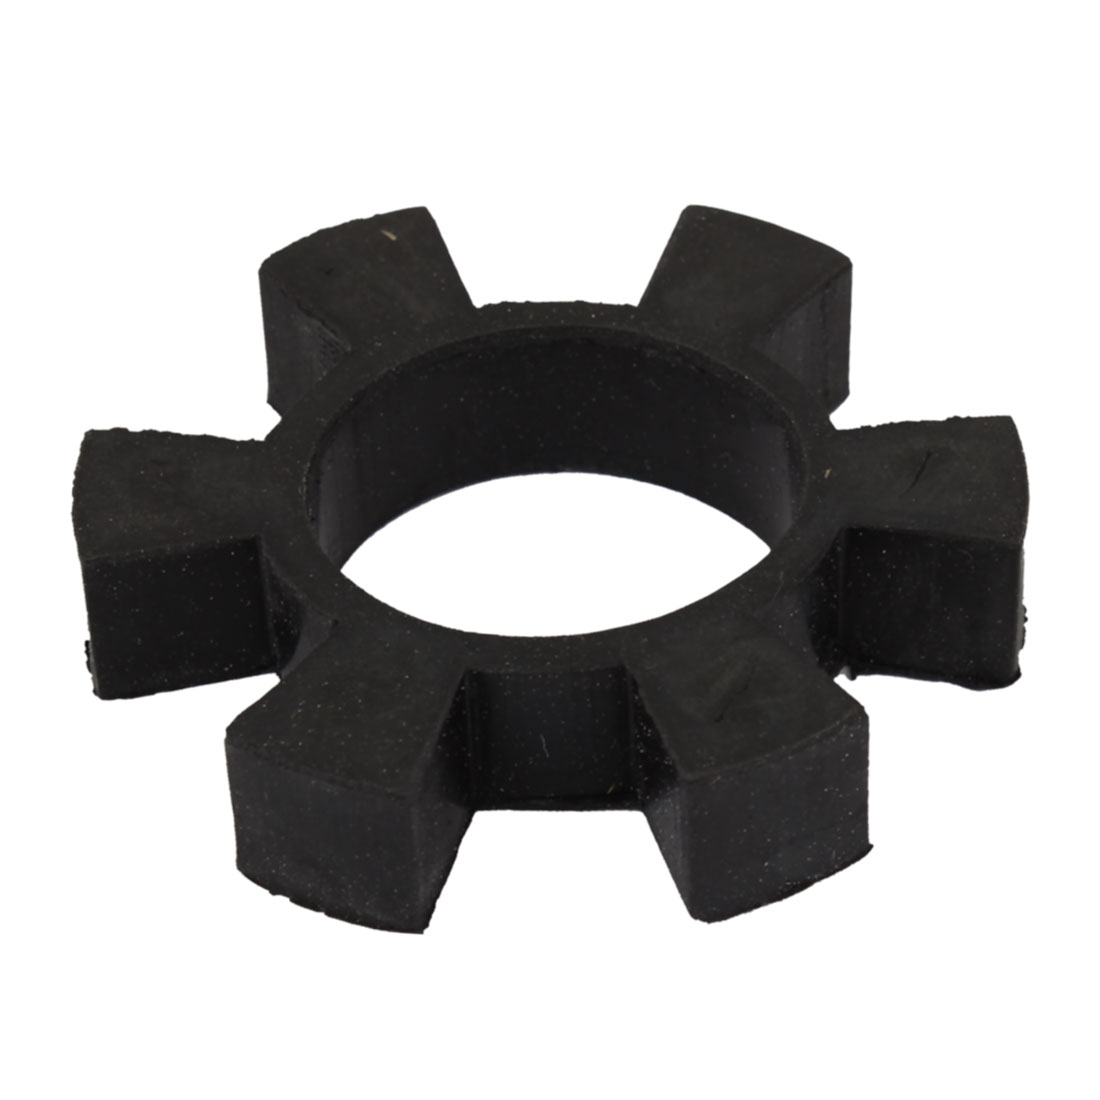 32mm Bore 6 Petal Black Rubber Drive Shaft Center Spider Coupler Damper